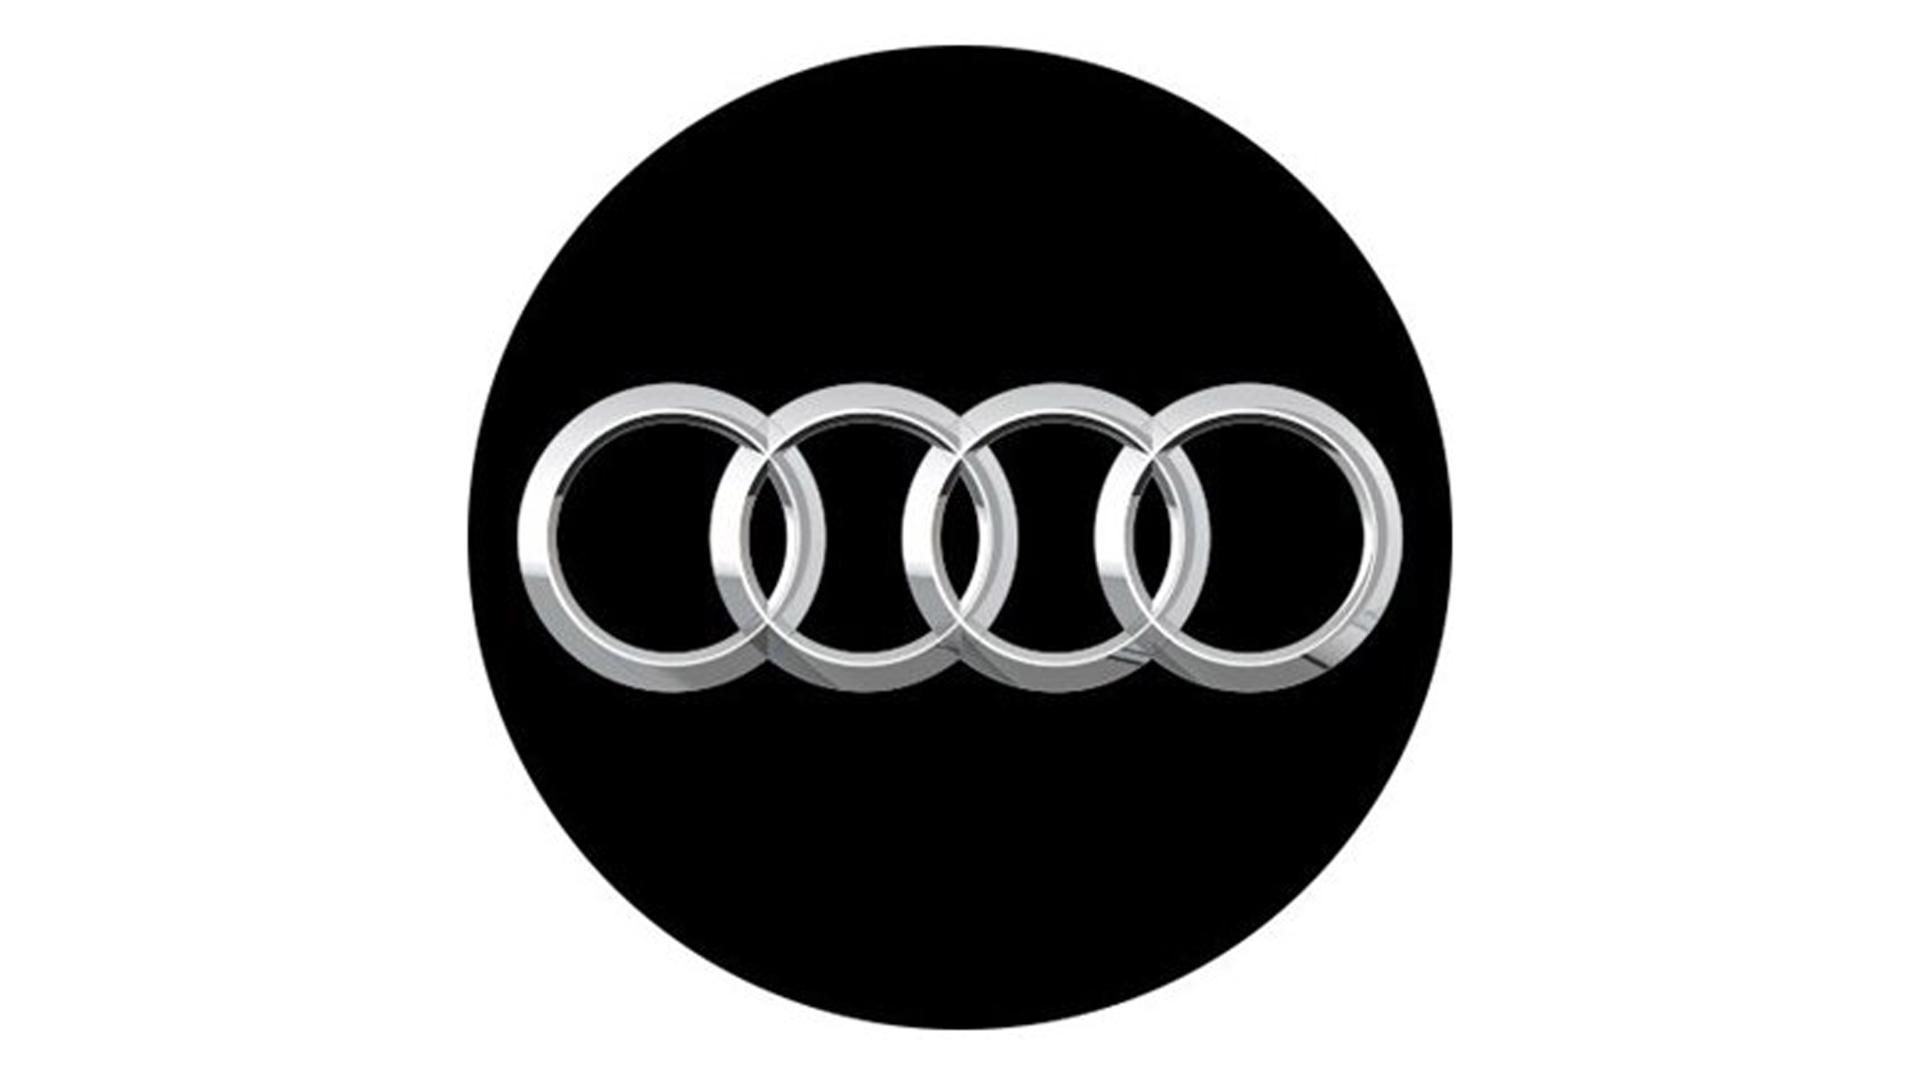 4CARS 3D CAR LOGO AUDI